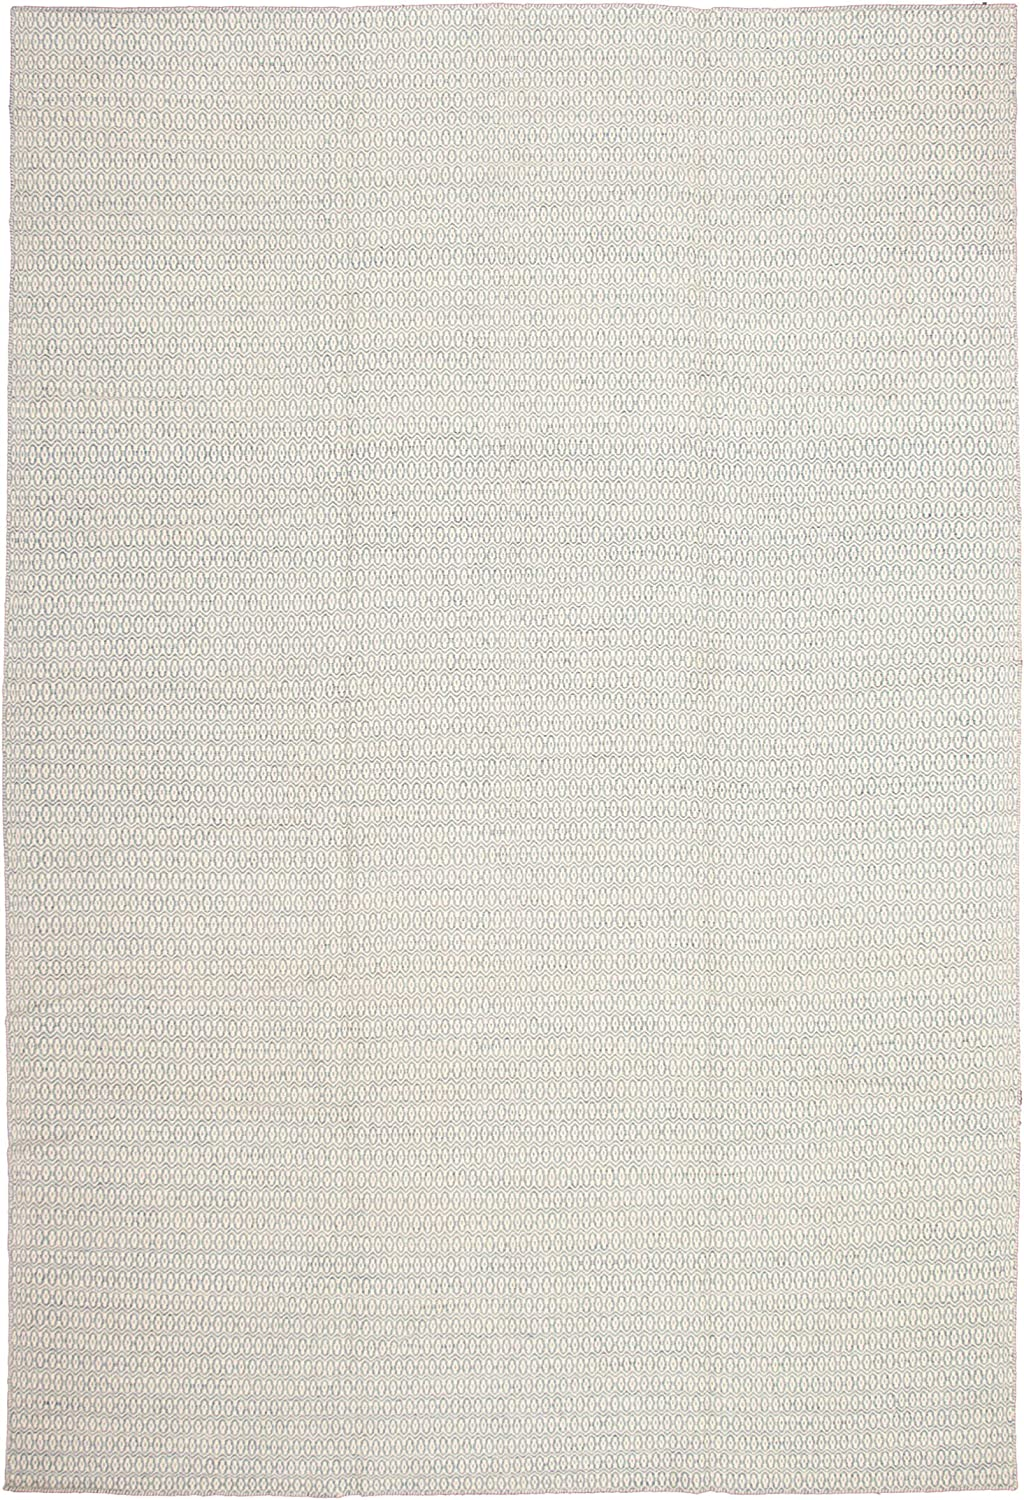 Large latest Award-winning store Area Rug for Living Bedroom Wool Room Hand-Knotted